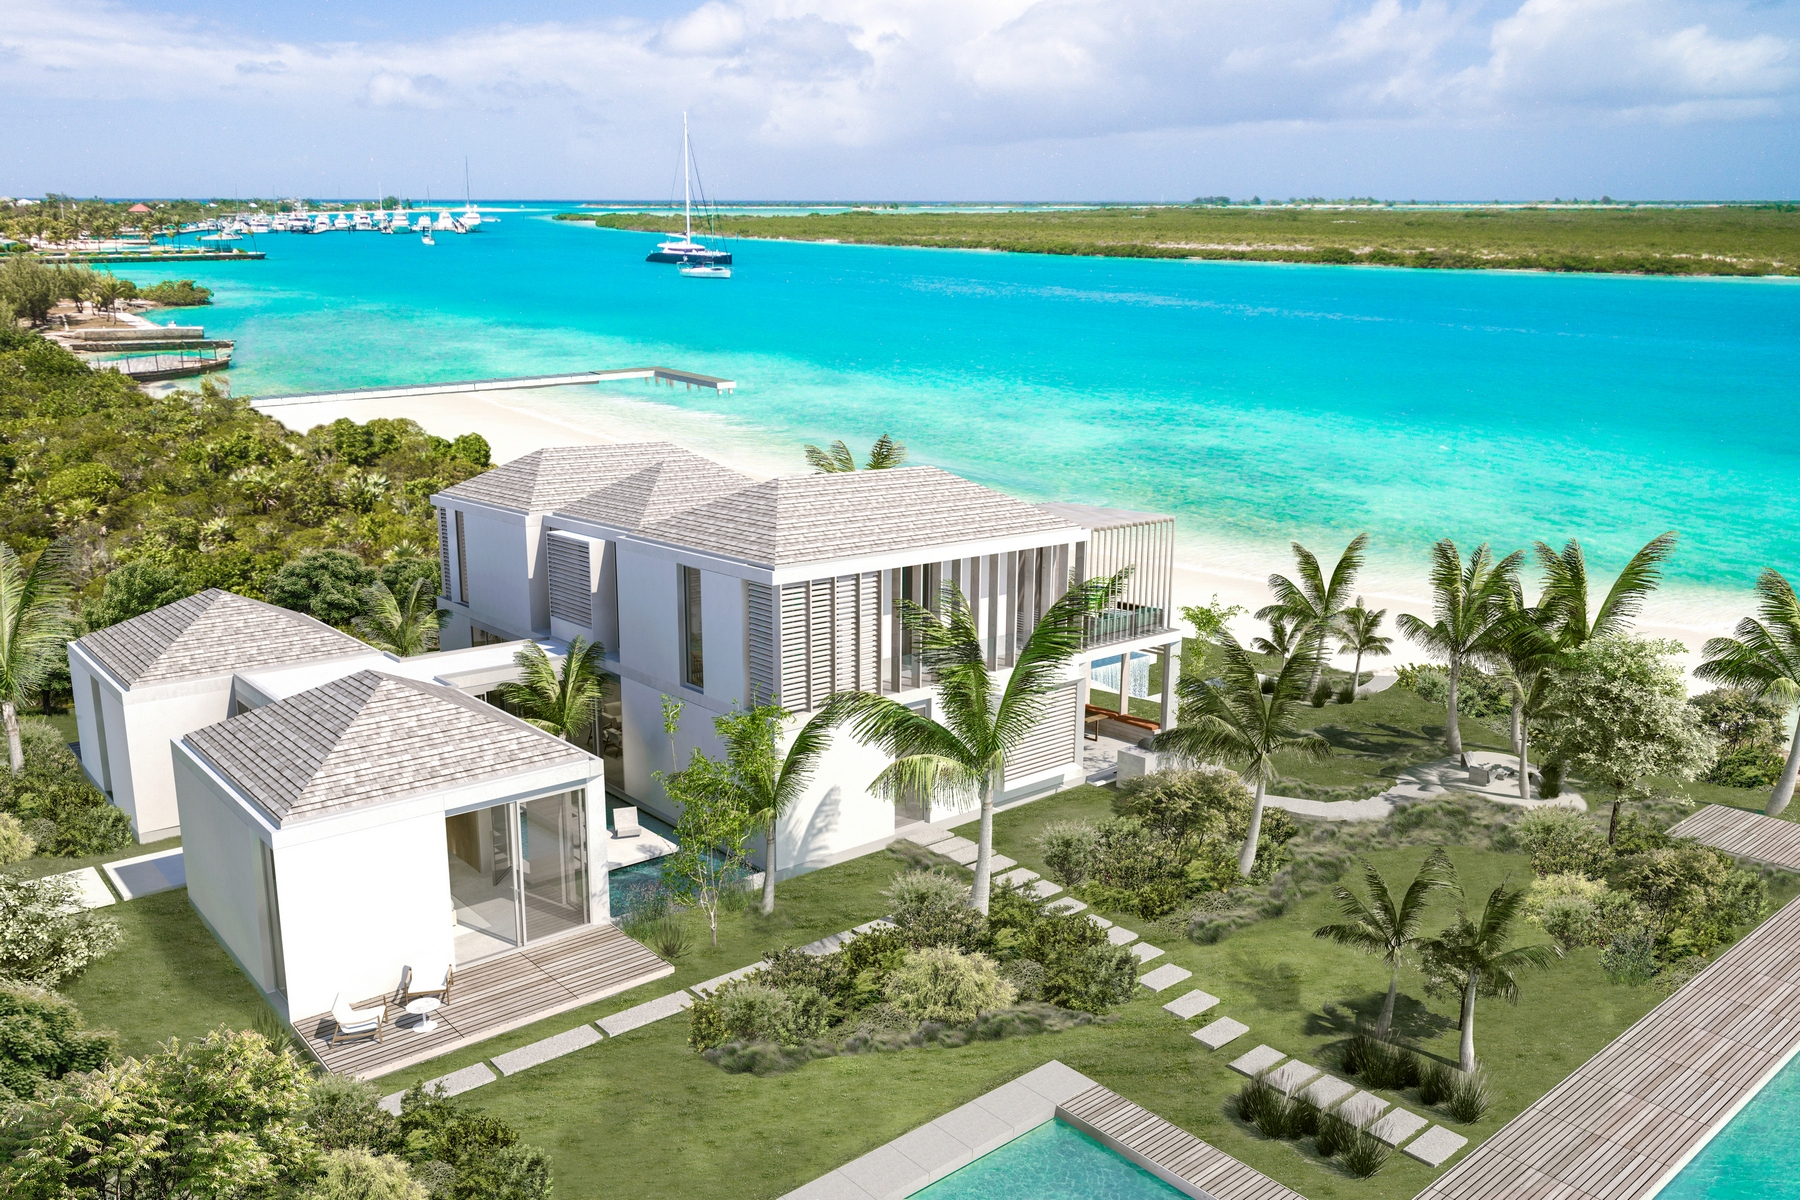 Single Family Home for Sale at Pavilion House - Beachfront Lot 1 Leeward, Turks And Caicos Islands